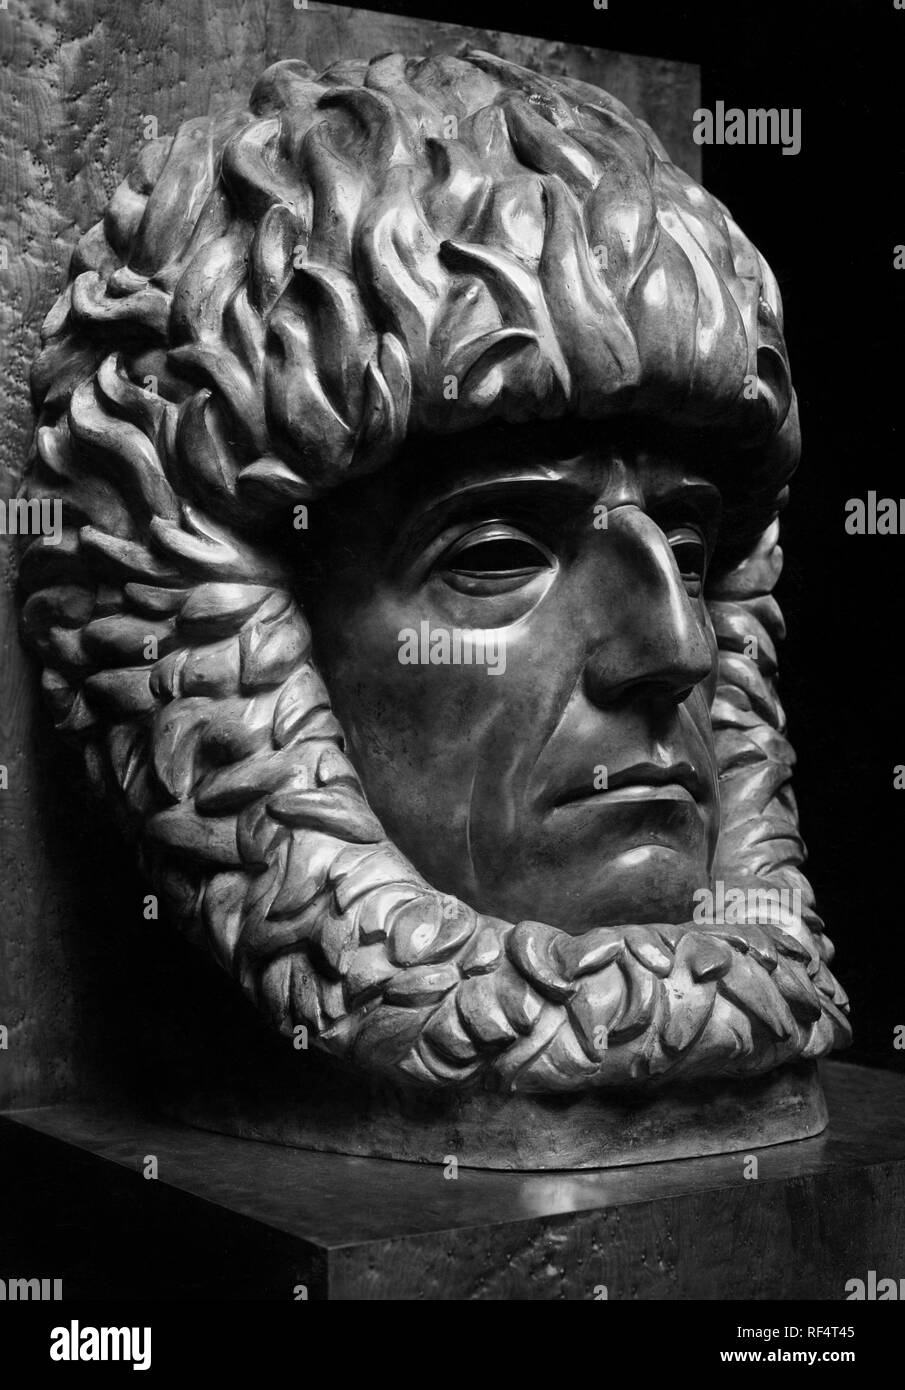 sculpture of roald engelbregt gravning amundsen, 1930 Stock Photo